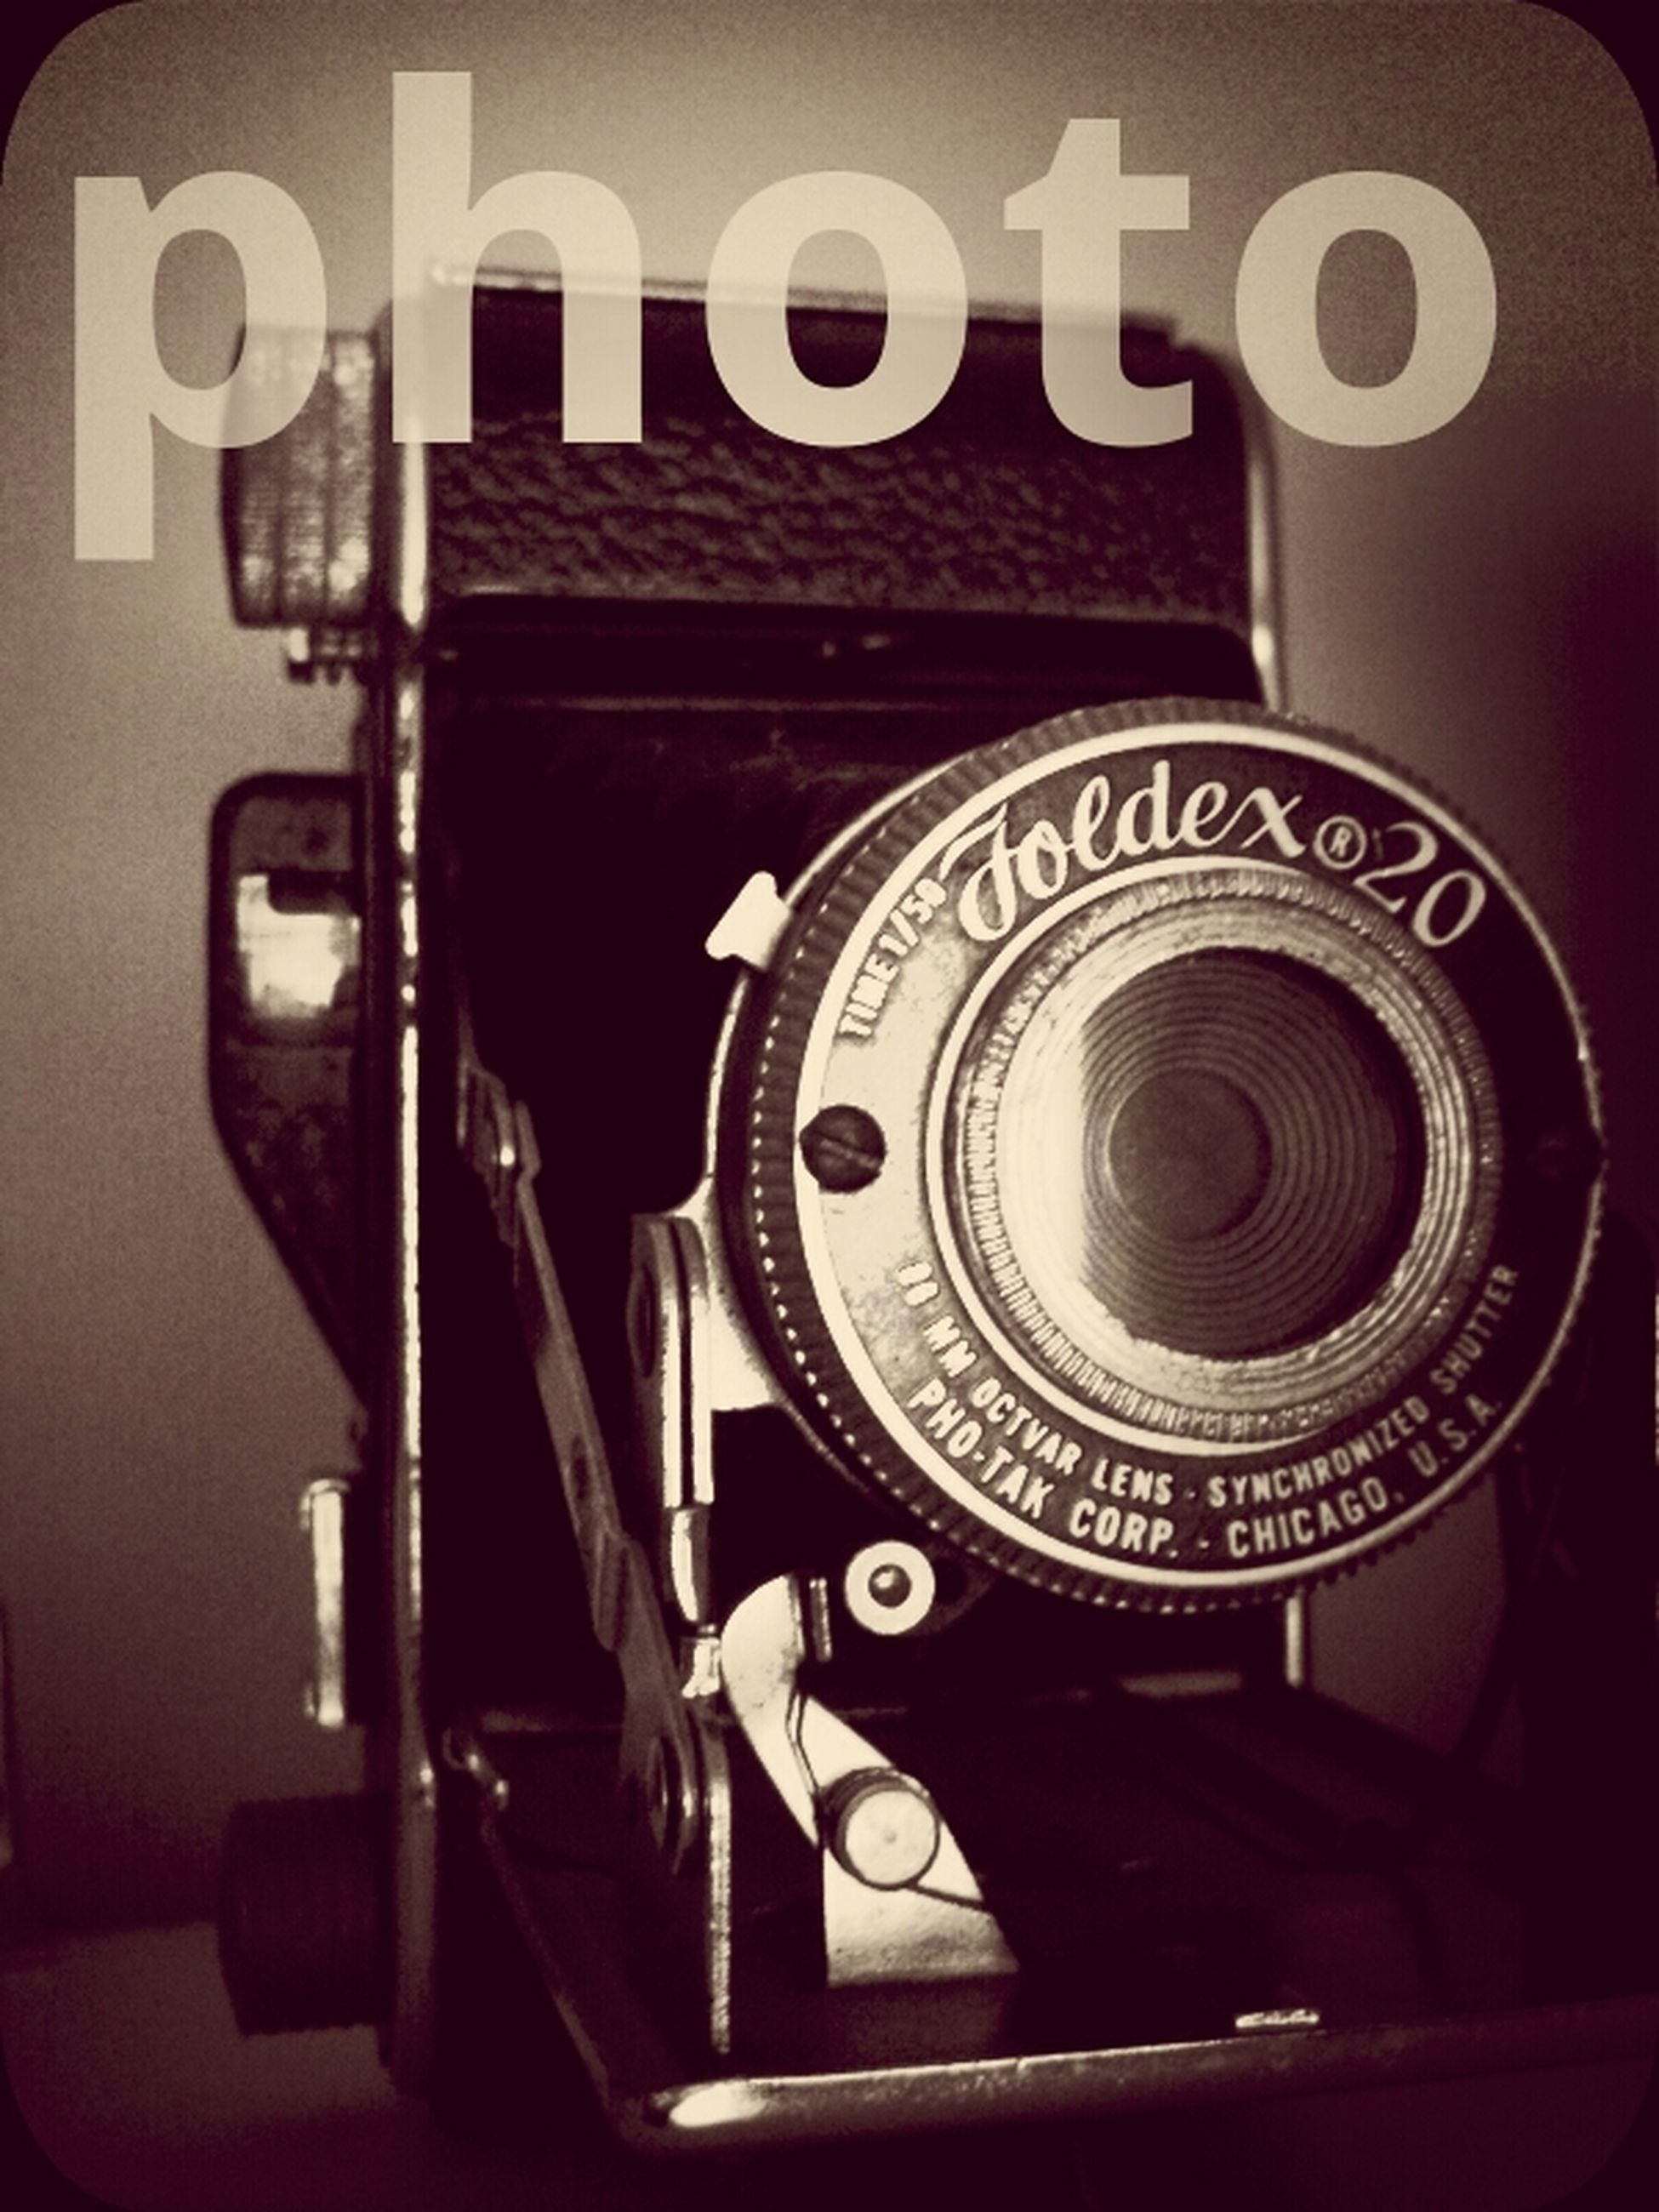 indoors, technology, photography themes, camera - photographic equipment, close-up, old-fashioned, communication, retro styled, music, photographing, wireless technology, arts culture and entertainment, machinery, connection, digital camera, musical instrument, equipment, focus on foreground, time, lens - optical instrument